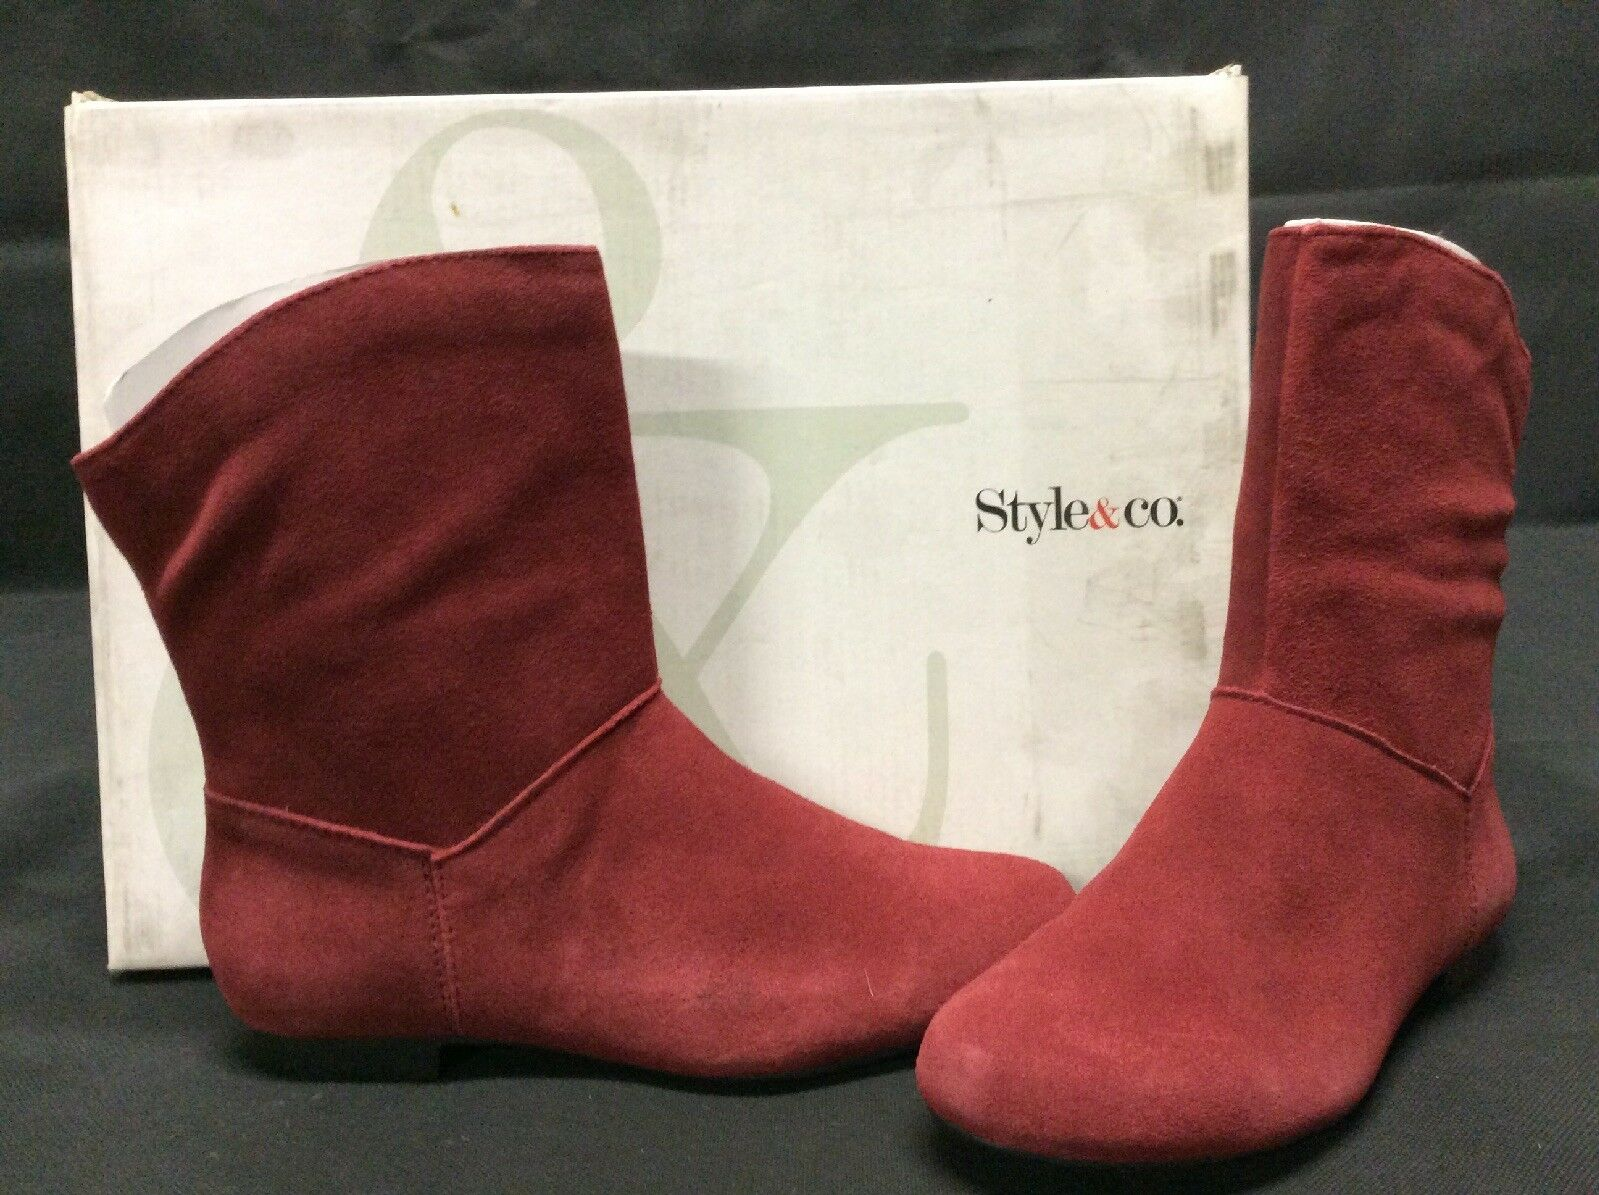 Style&co BRUCE Women's  Boots, Red Suede, Size 5.5 M